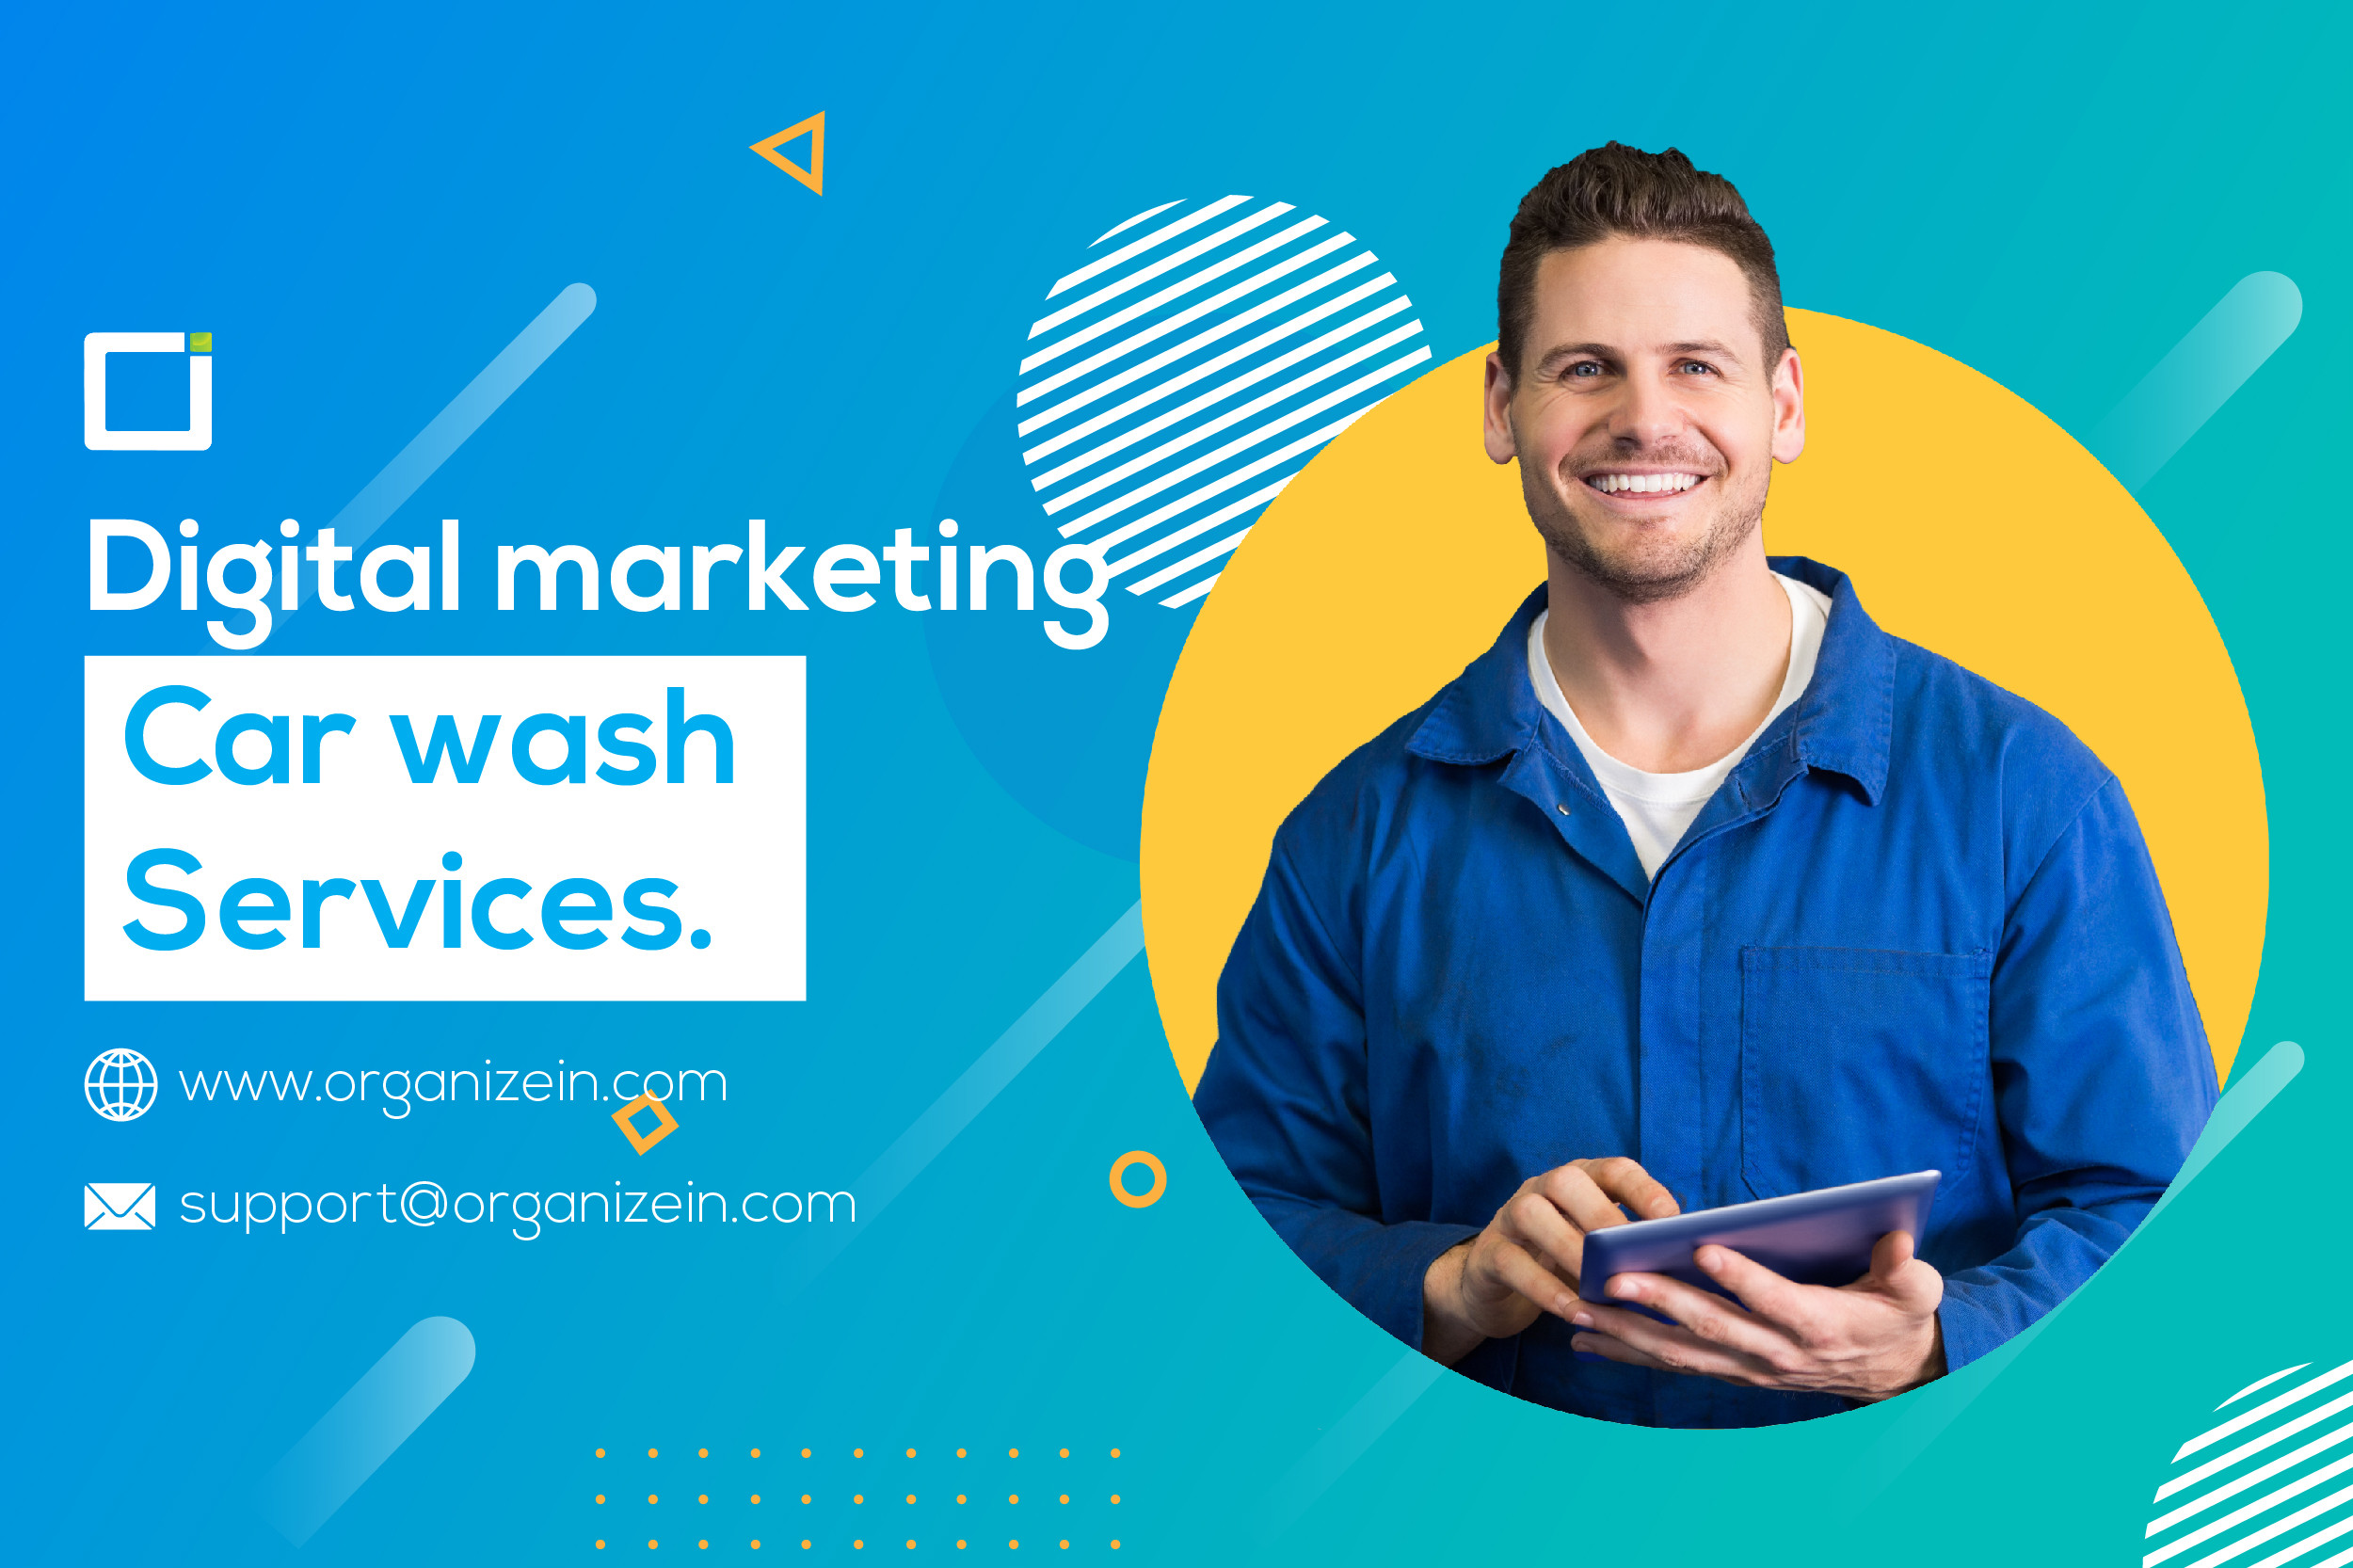 Digital marketing for car wash services